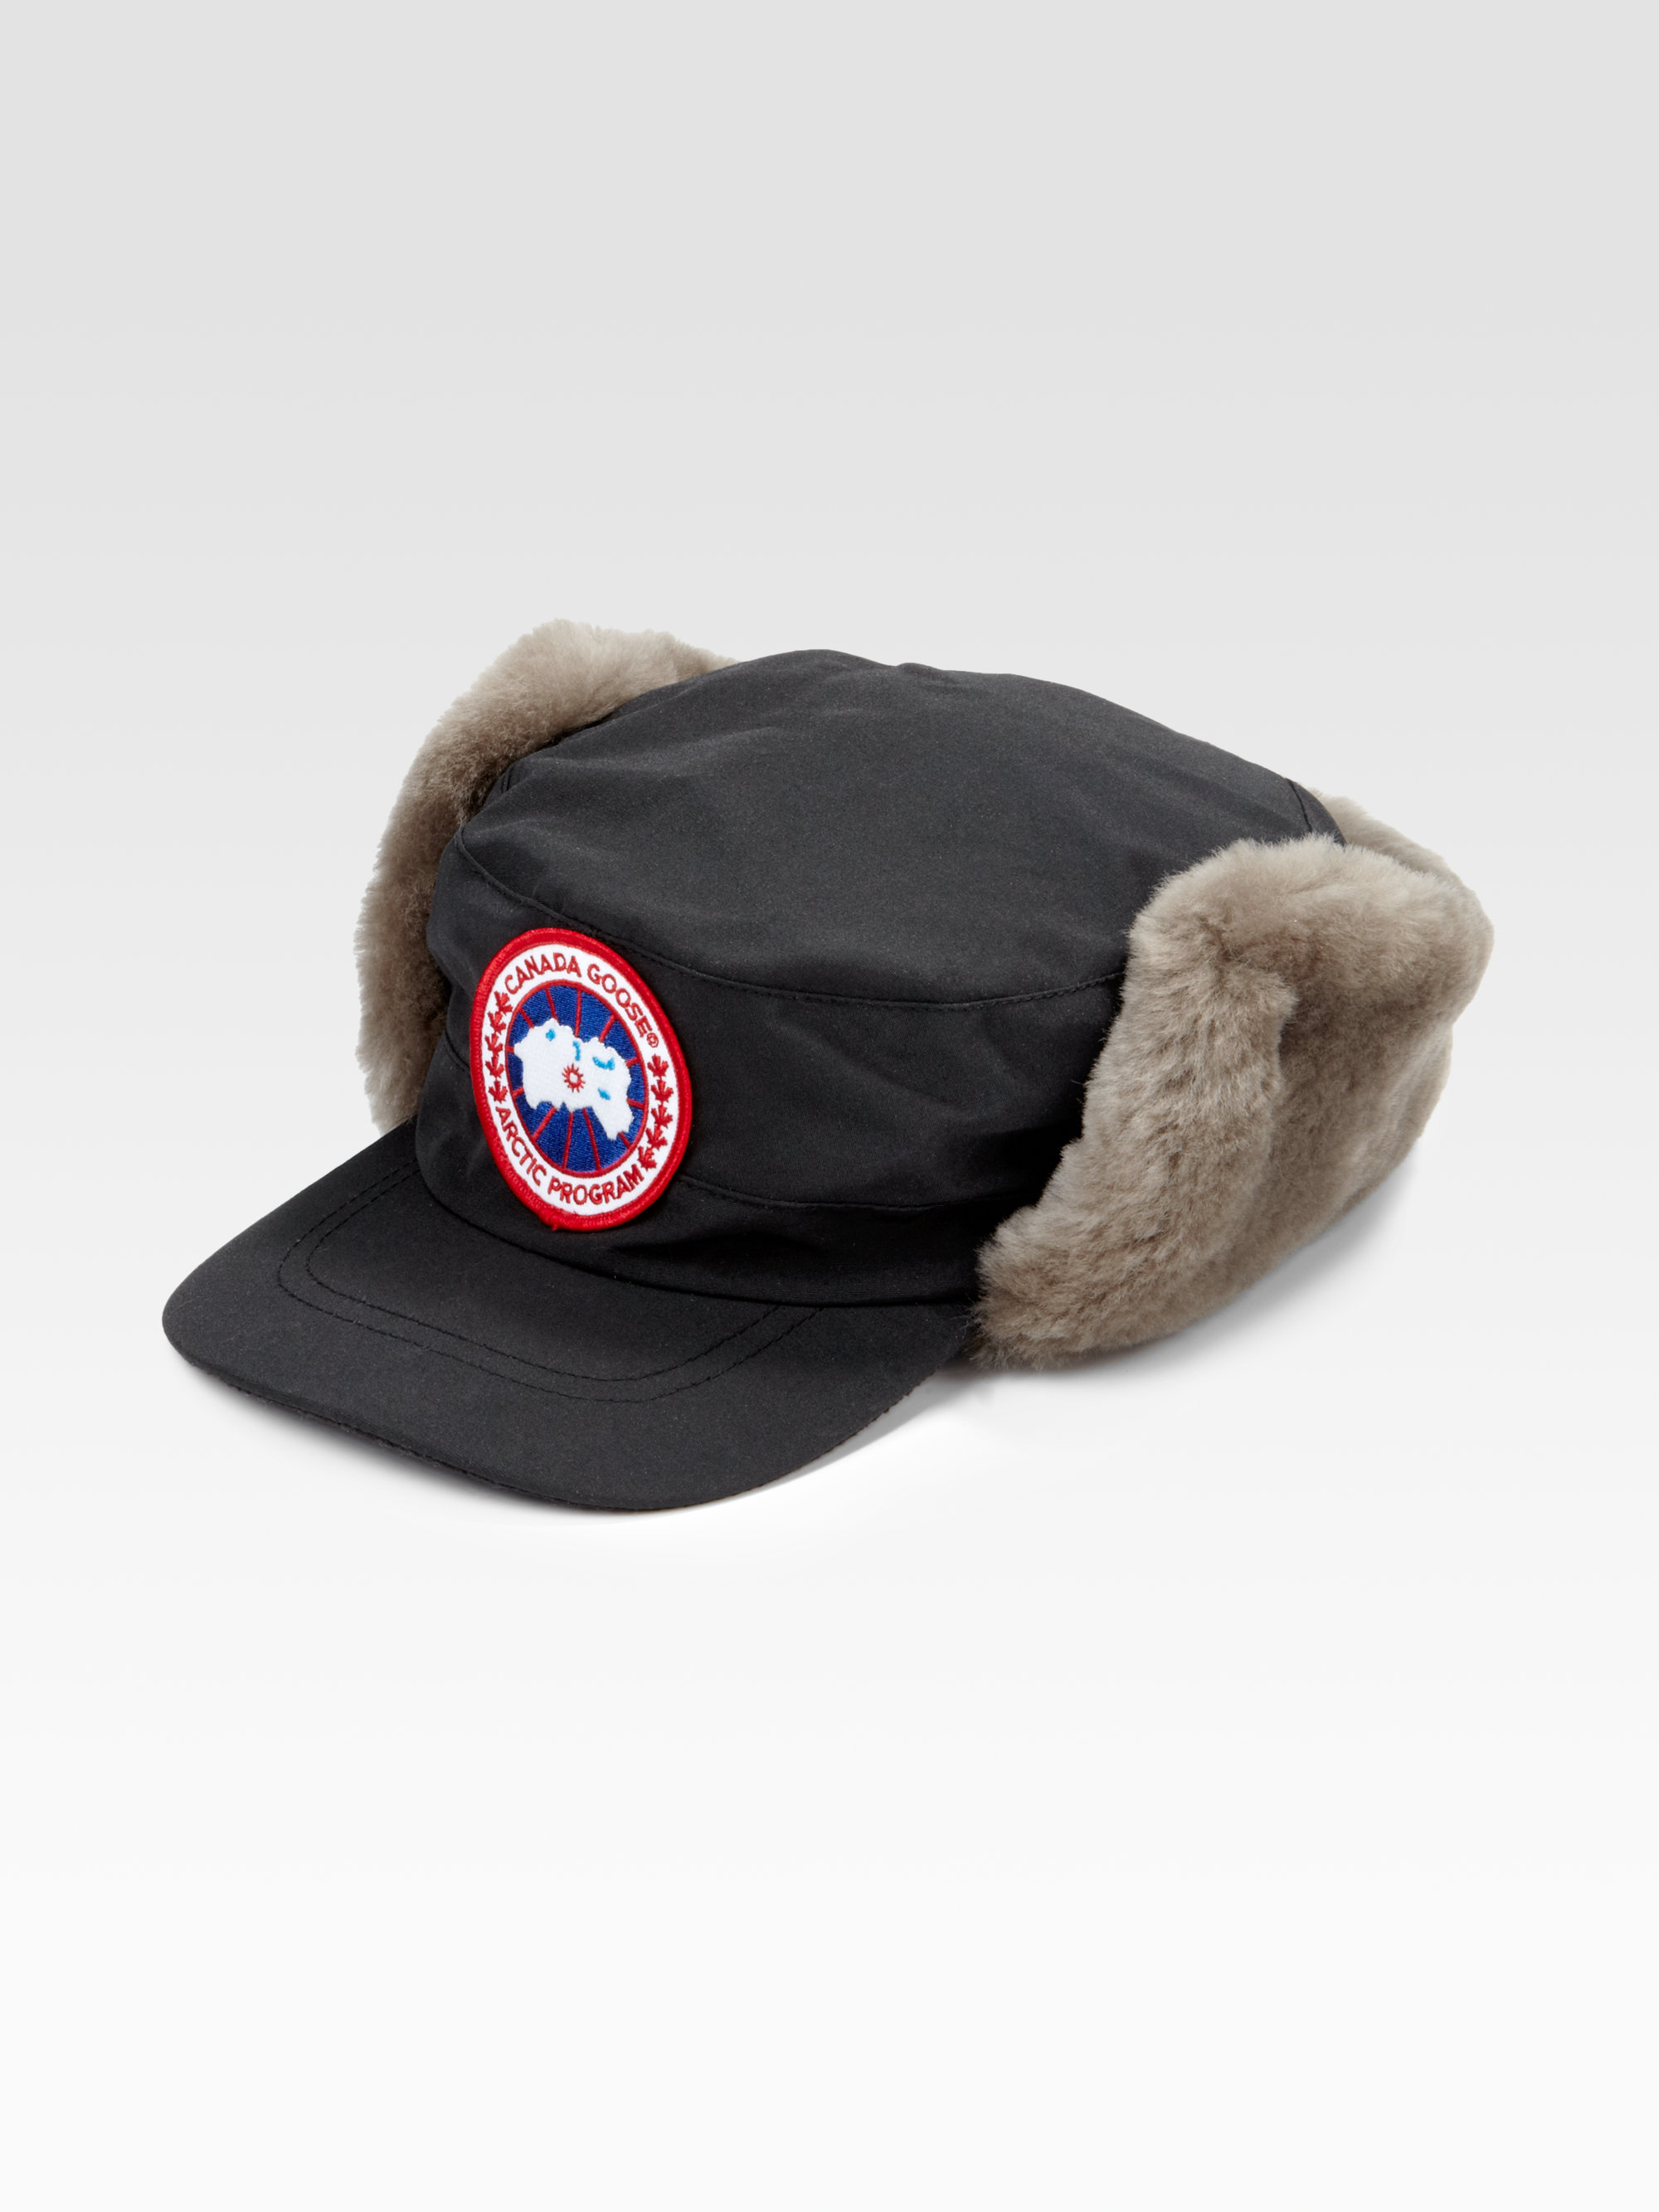 Lyst - Canada Goose Classique Shearling Hat in Brown for Men 1266d58b7e5